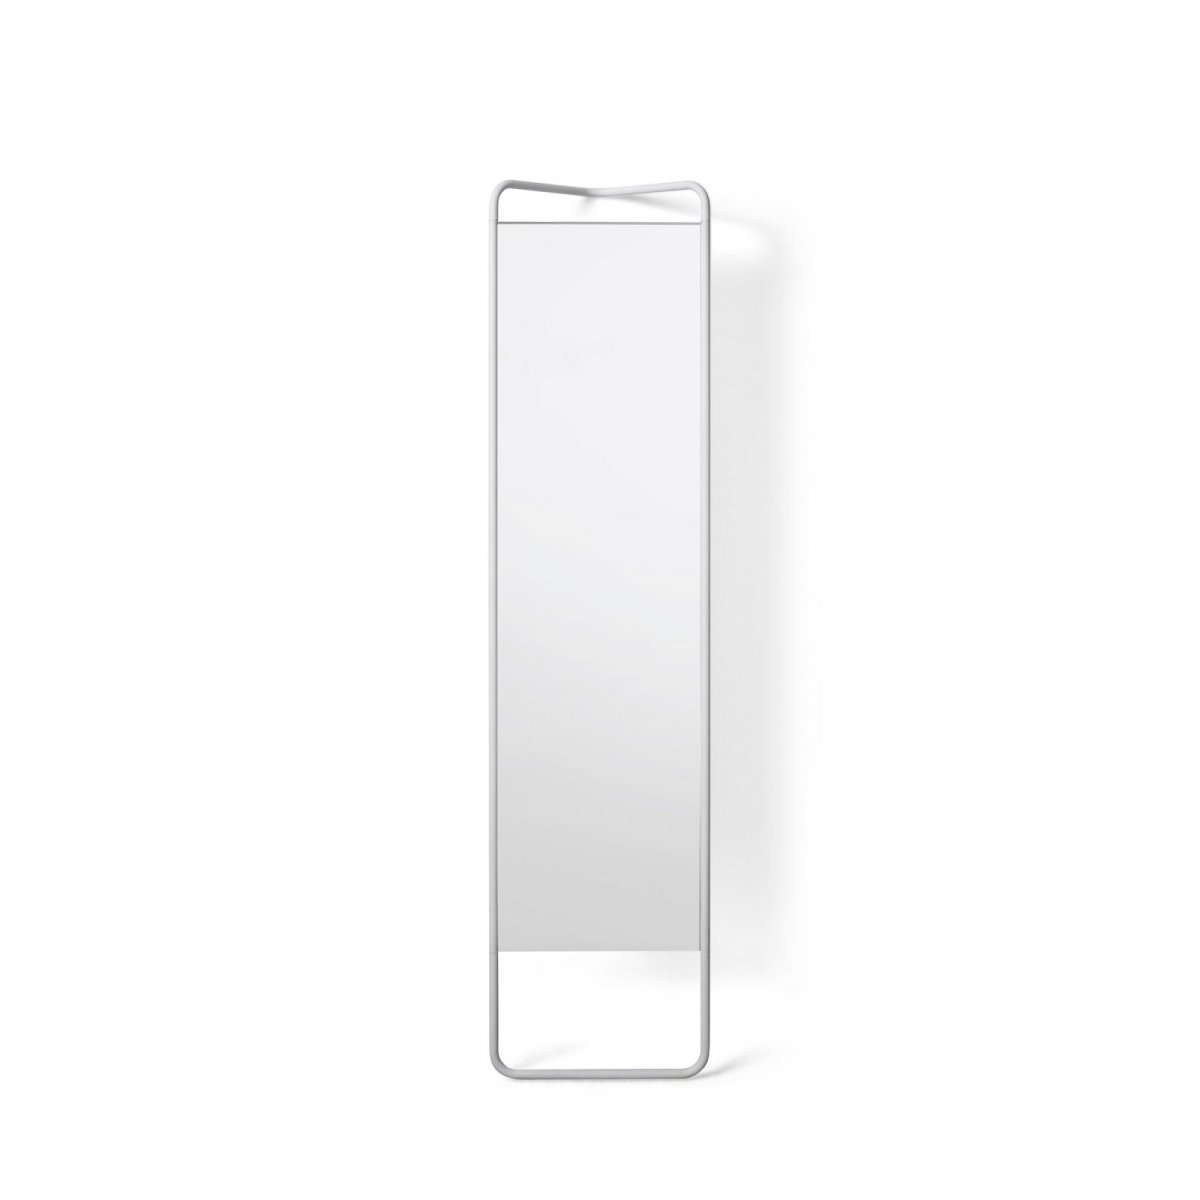 Kaschkasch Floor Mirror, white, front view.